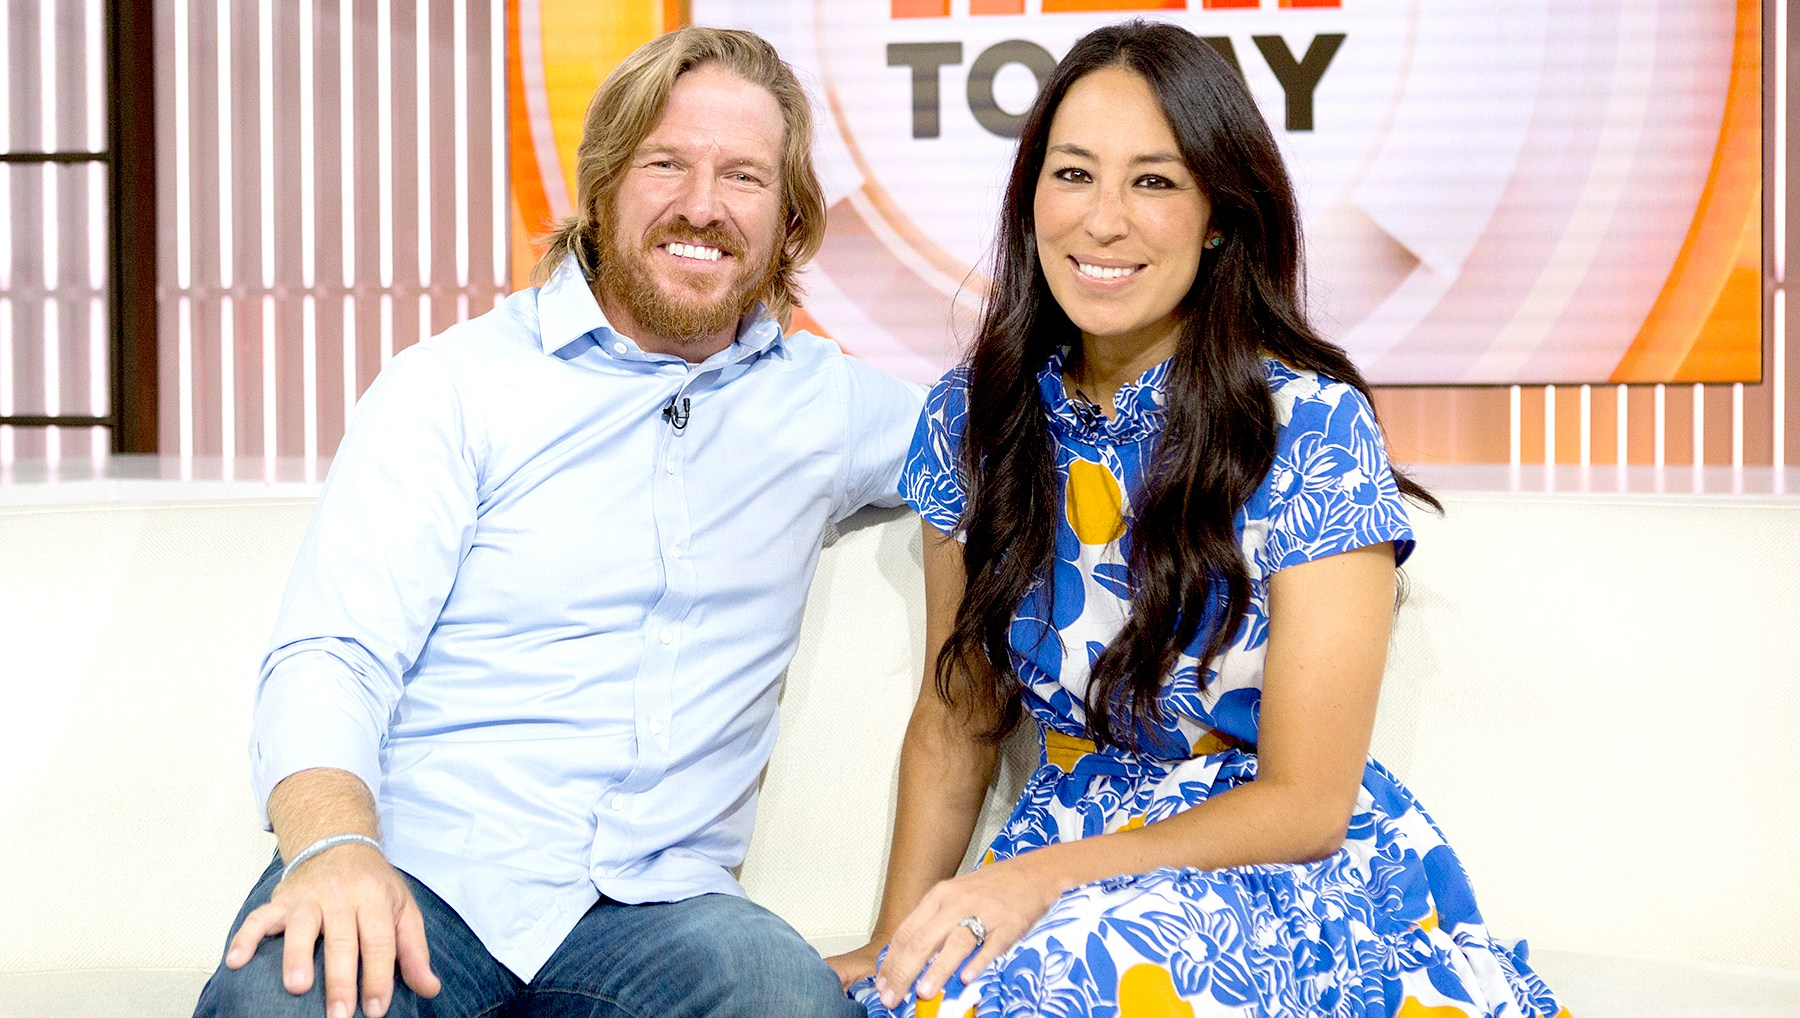 Joanna Gaines Gives Birth Welcomes Baby No 5 With Husband Chip